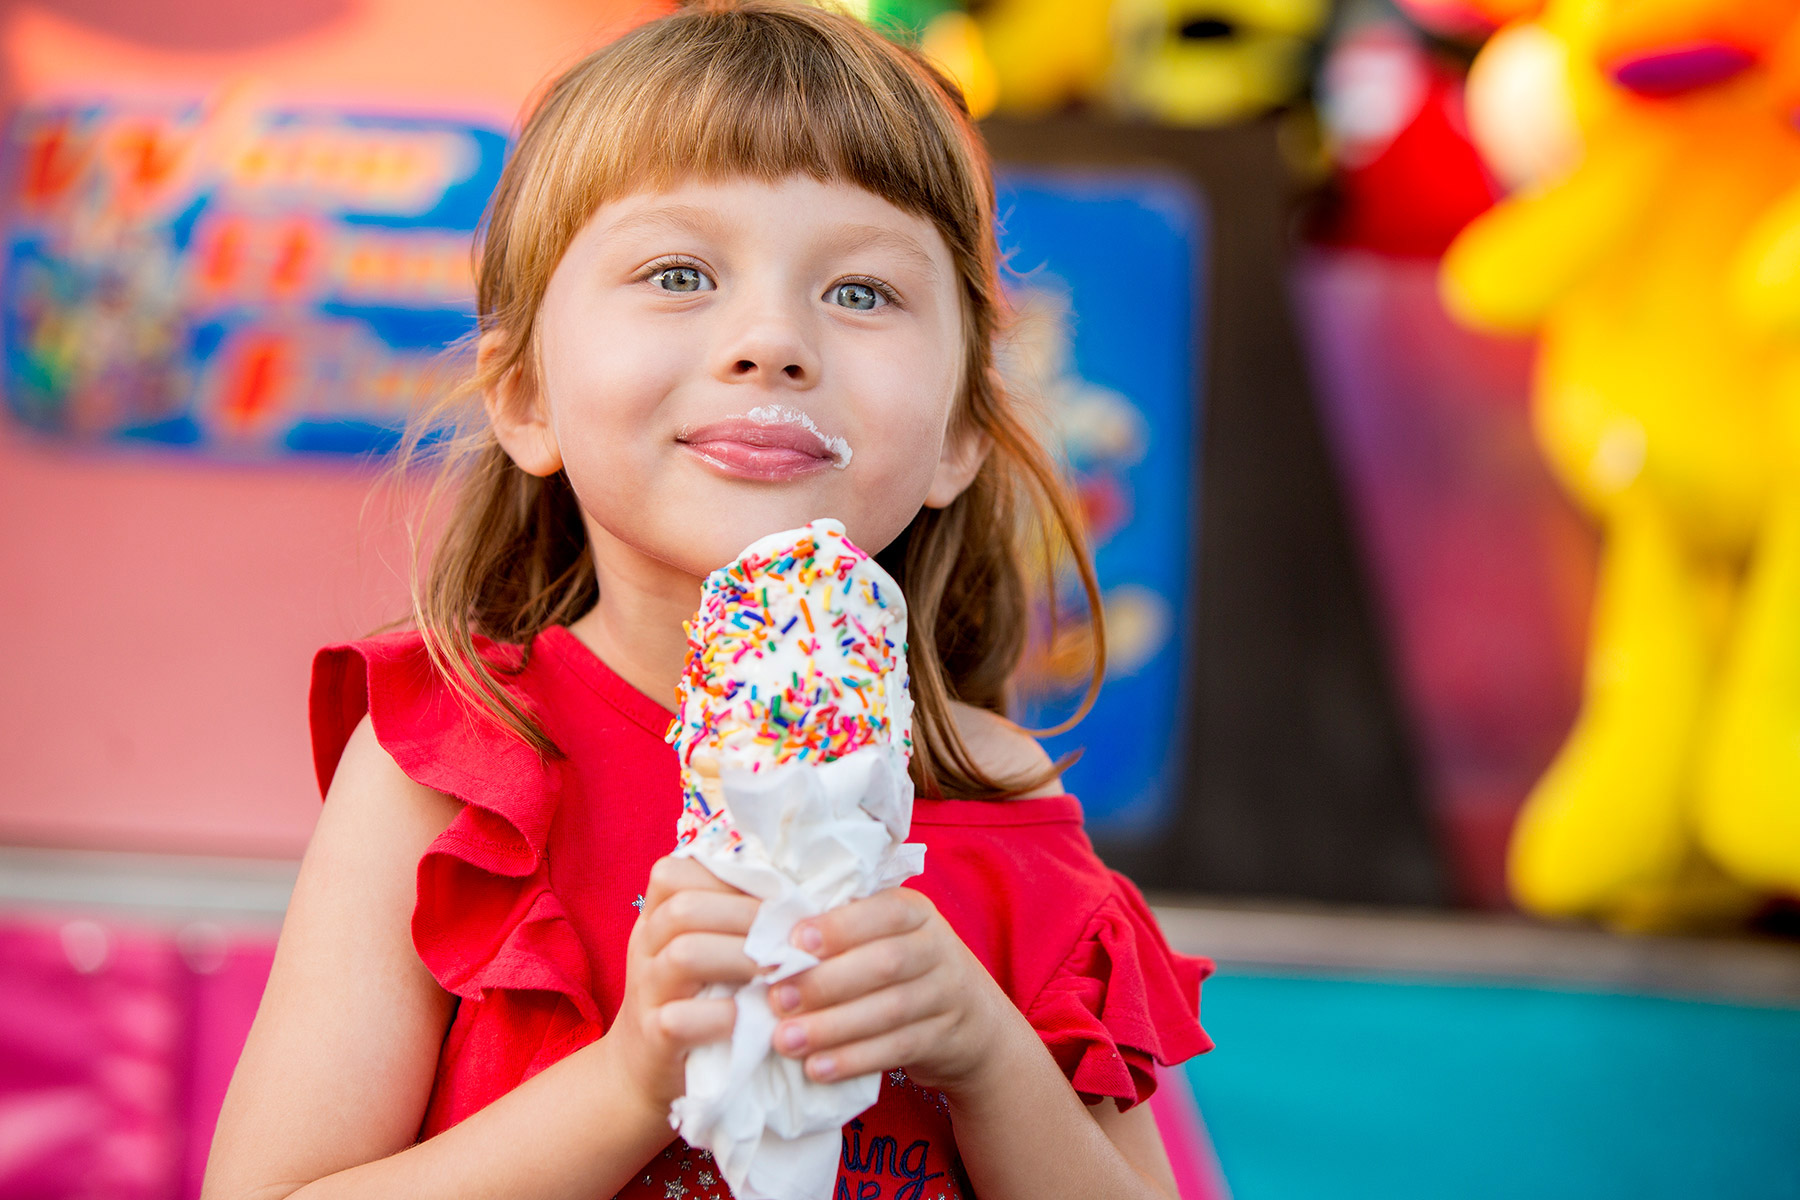 miami_lifestyle_photographer_david_gonzalez_environmental_portrait_kid_fun_fair_icecream_advertising_1800.jpg